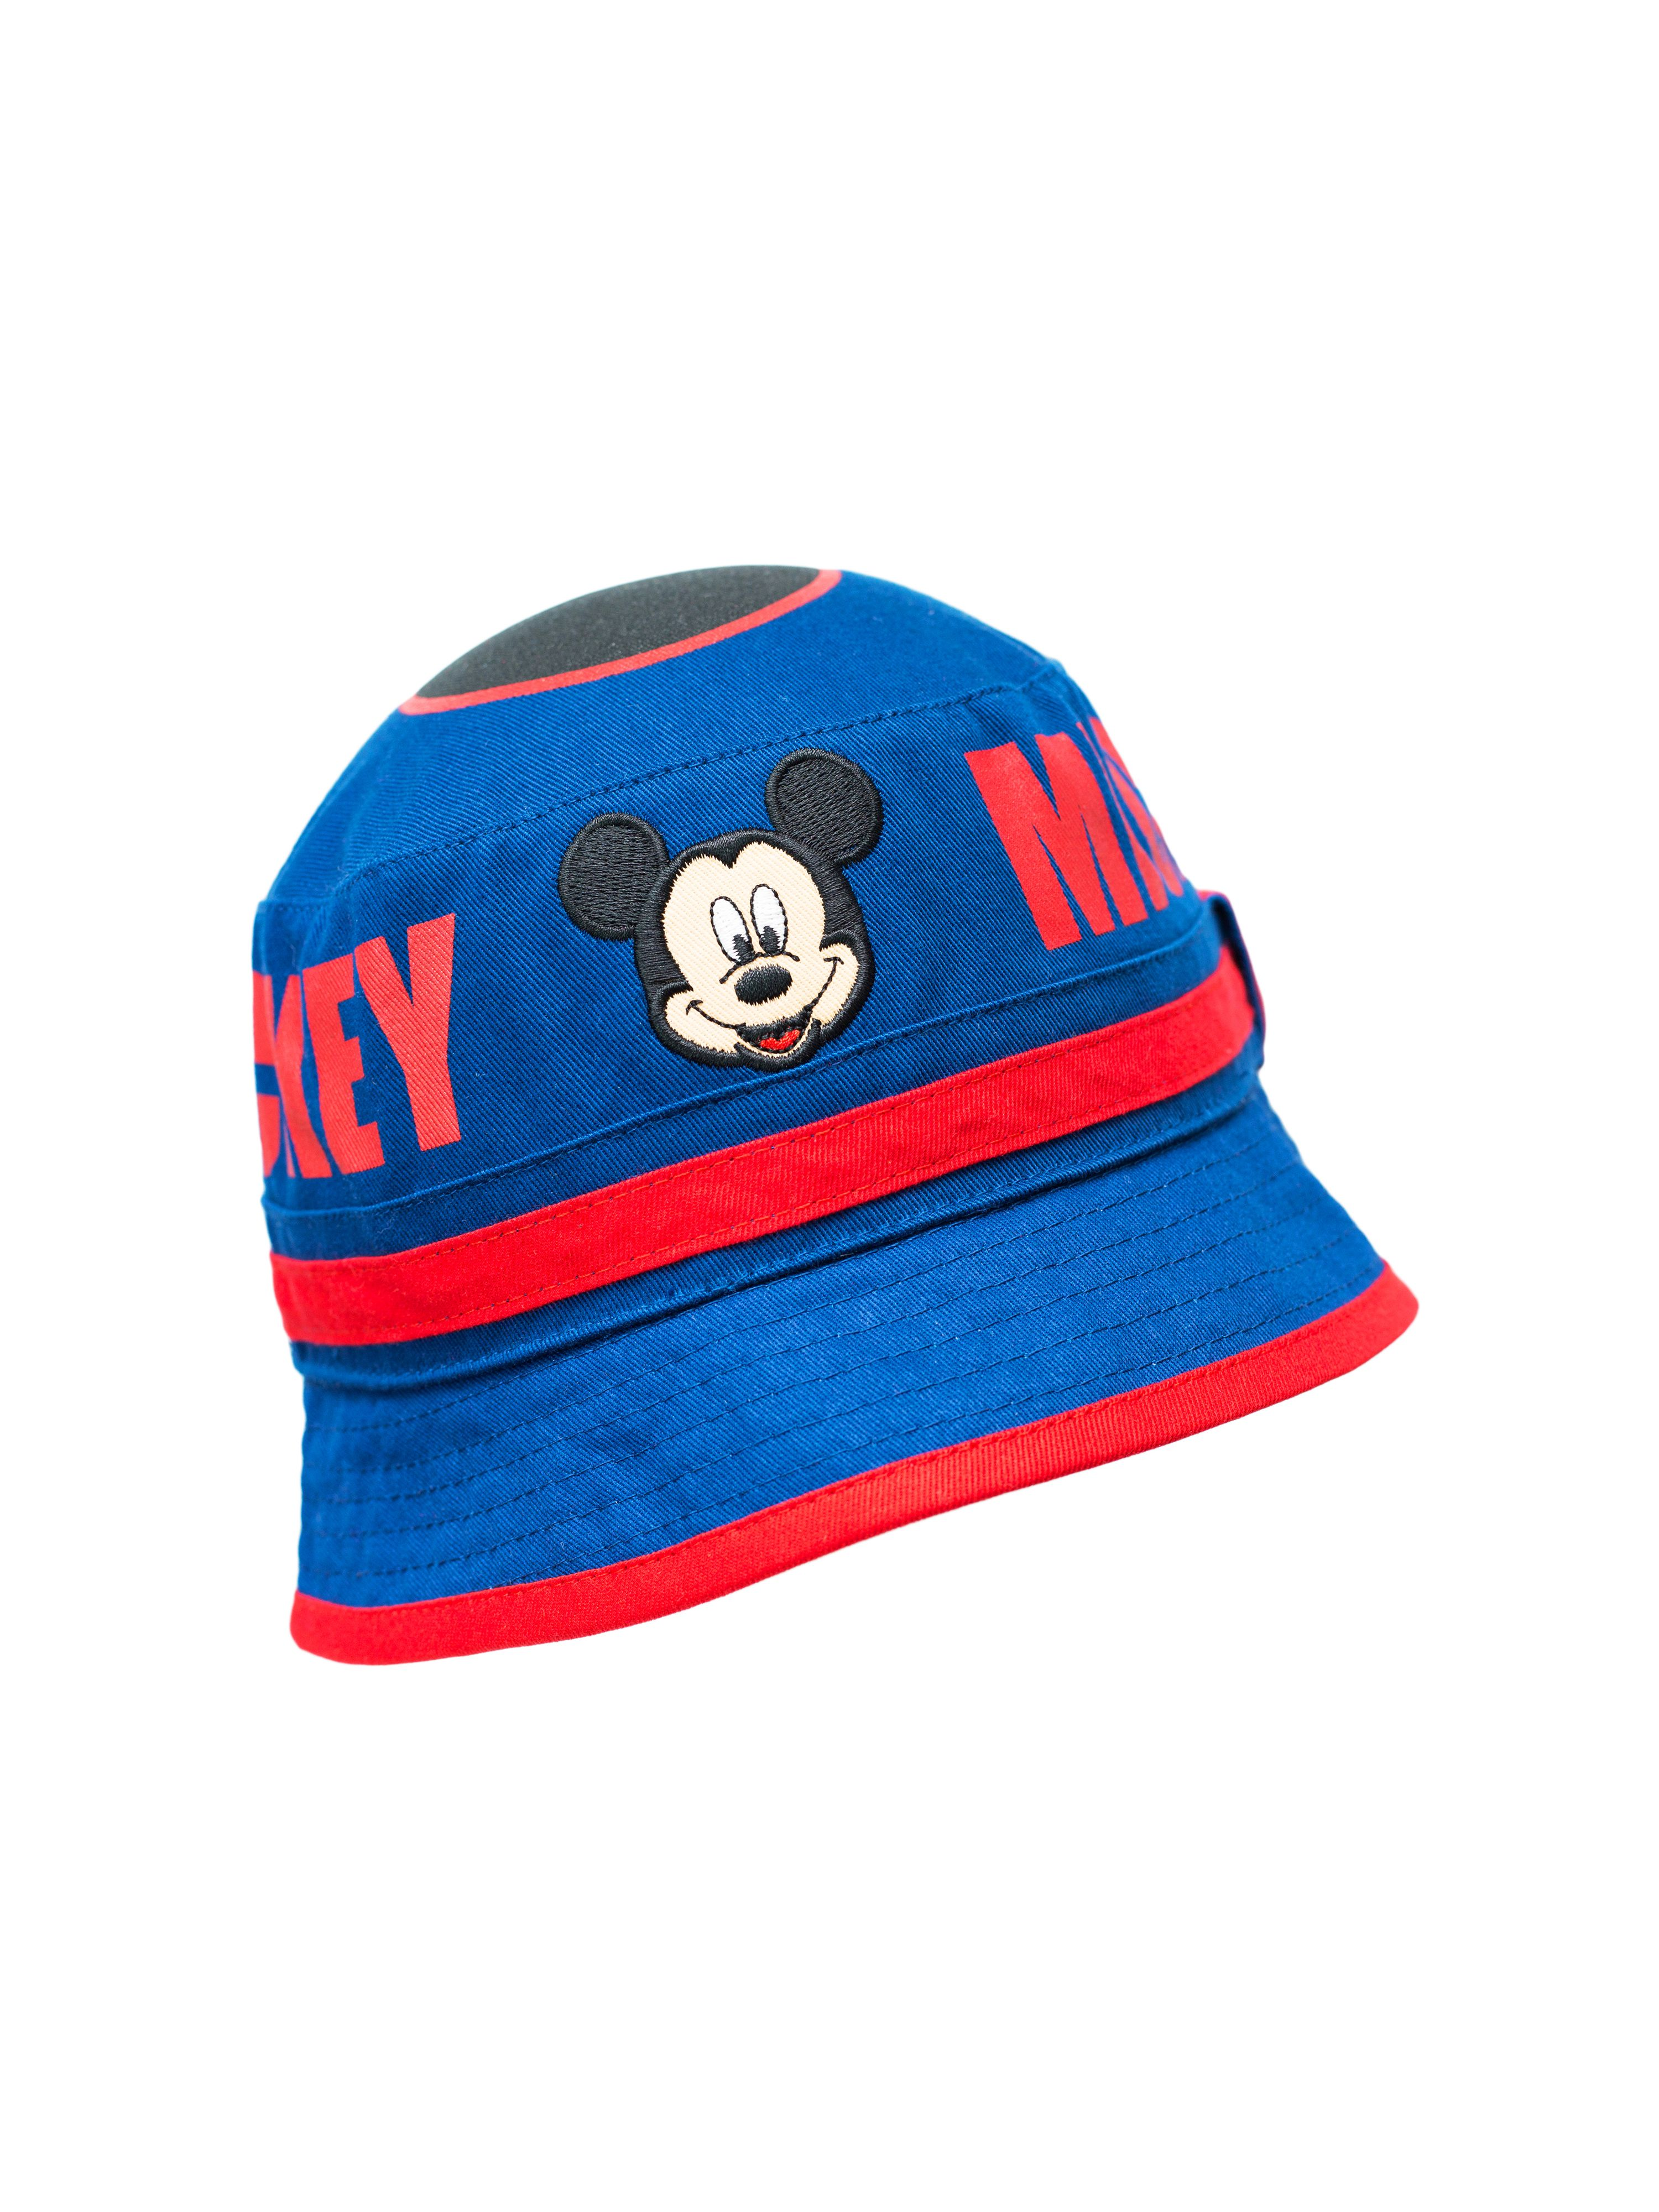 b858b2ce7 Mickey Mouse Baby Toddler Boy Bucket Hat